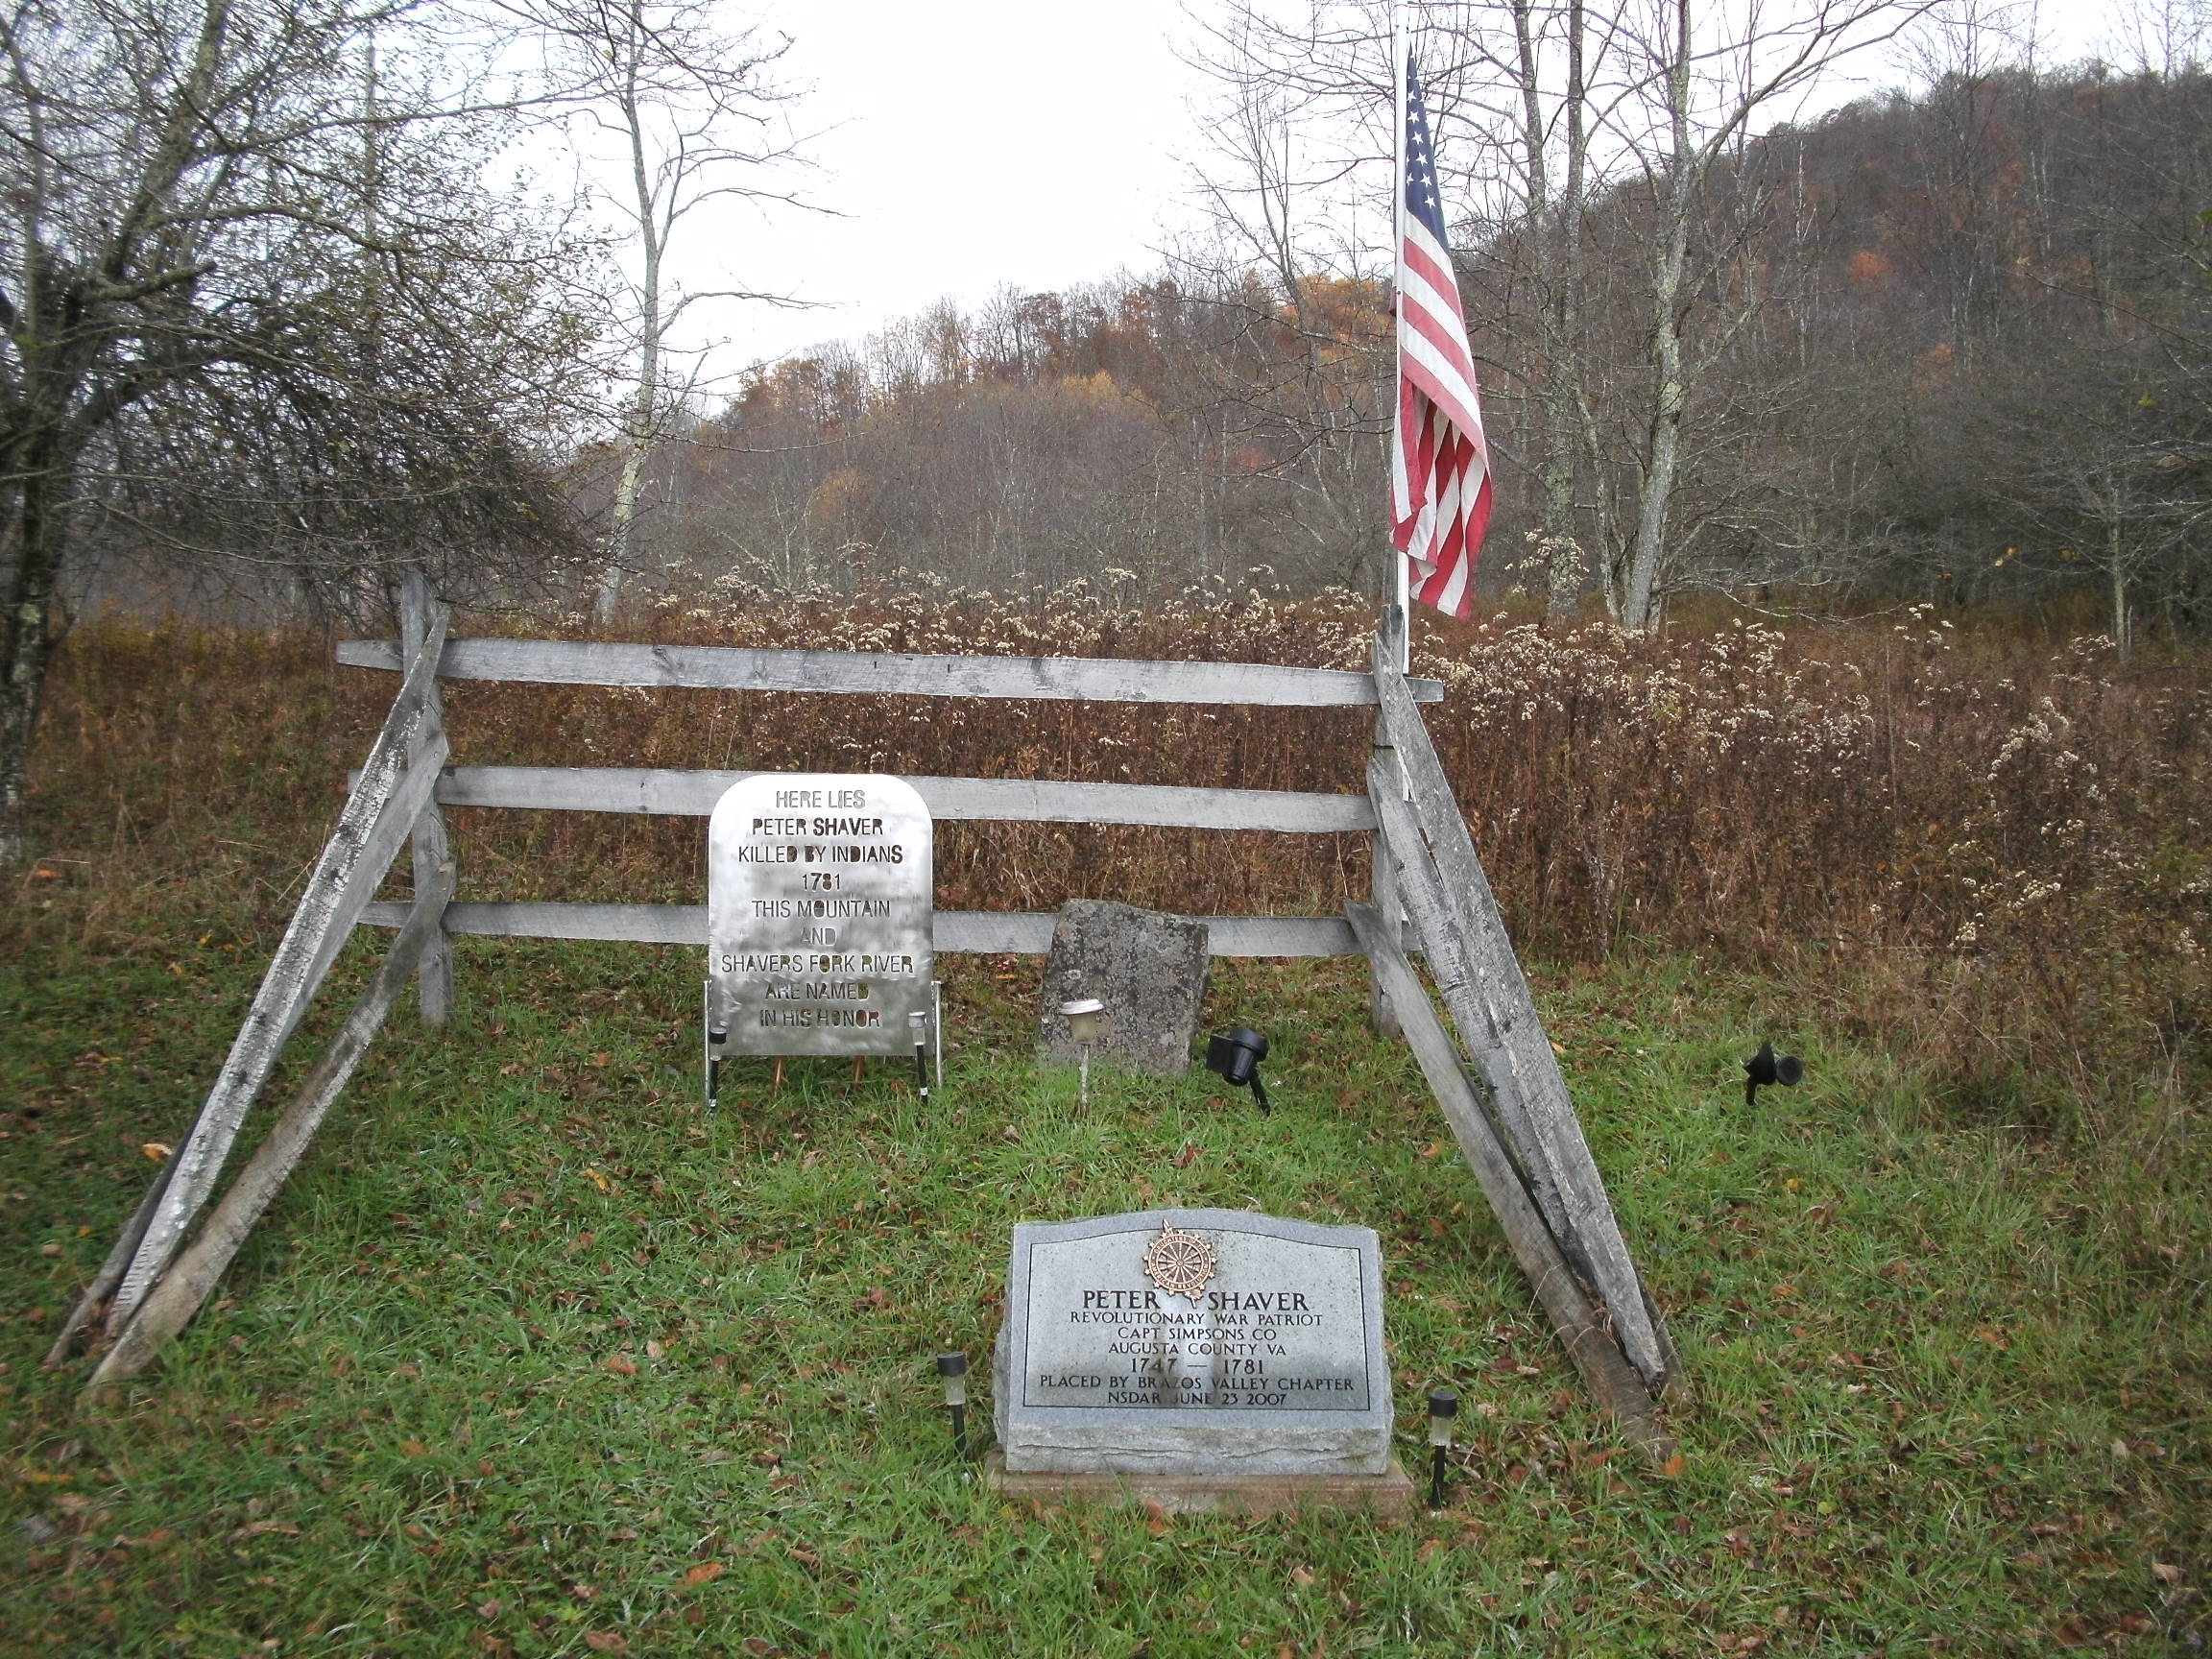 Shaver's grave.  (photo by Steven Hart)